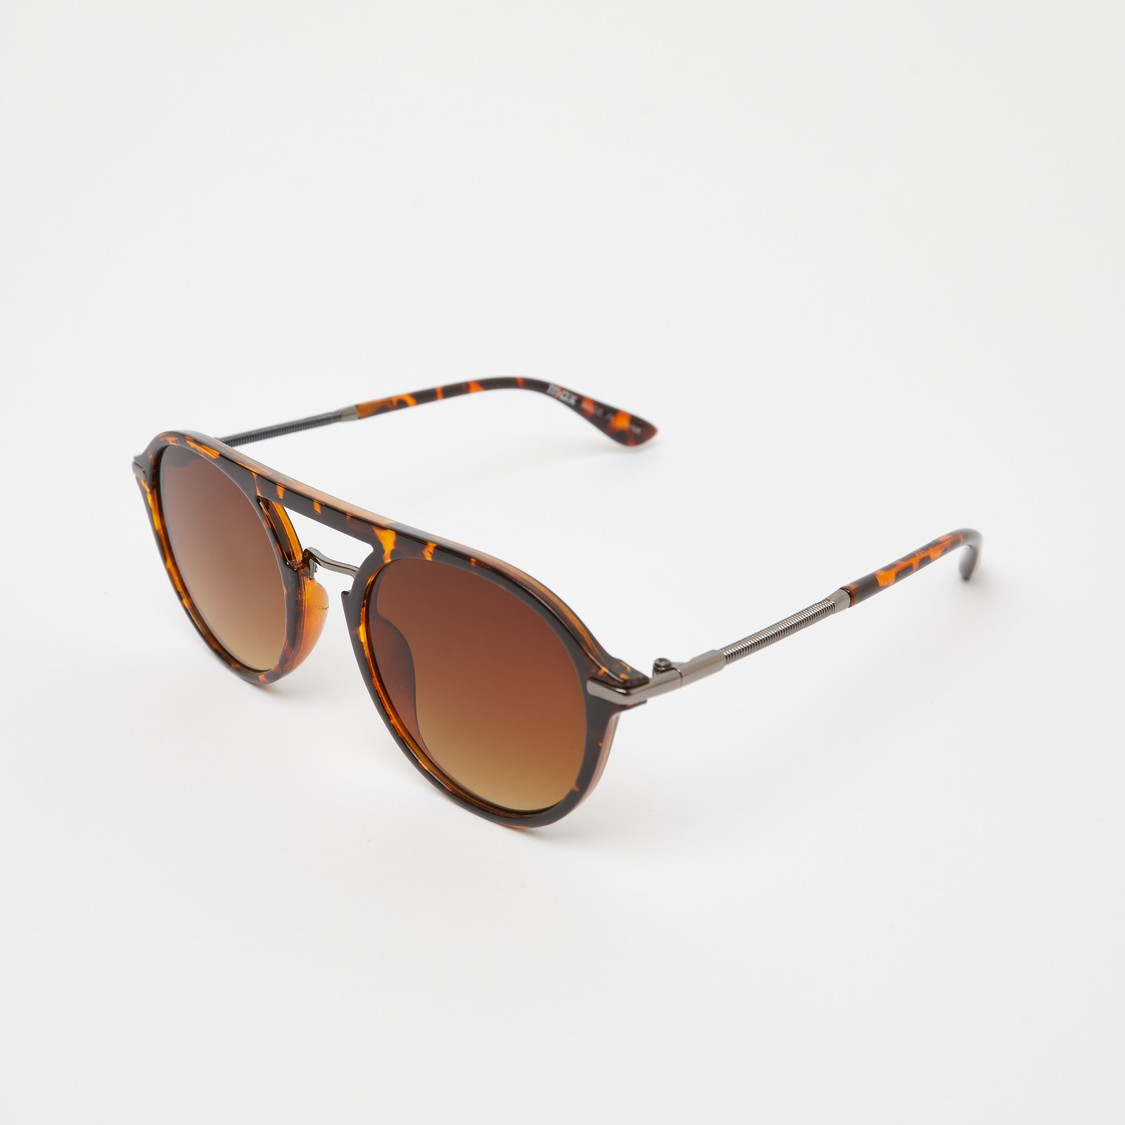 Printed Full Rim Sunglasses with Nose Pads